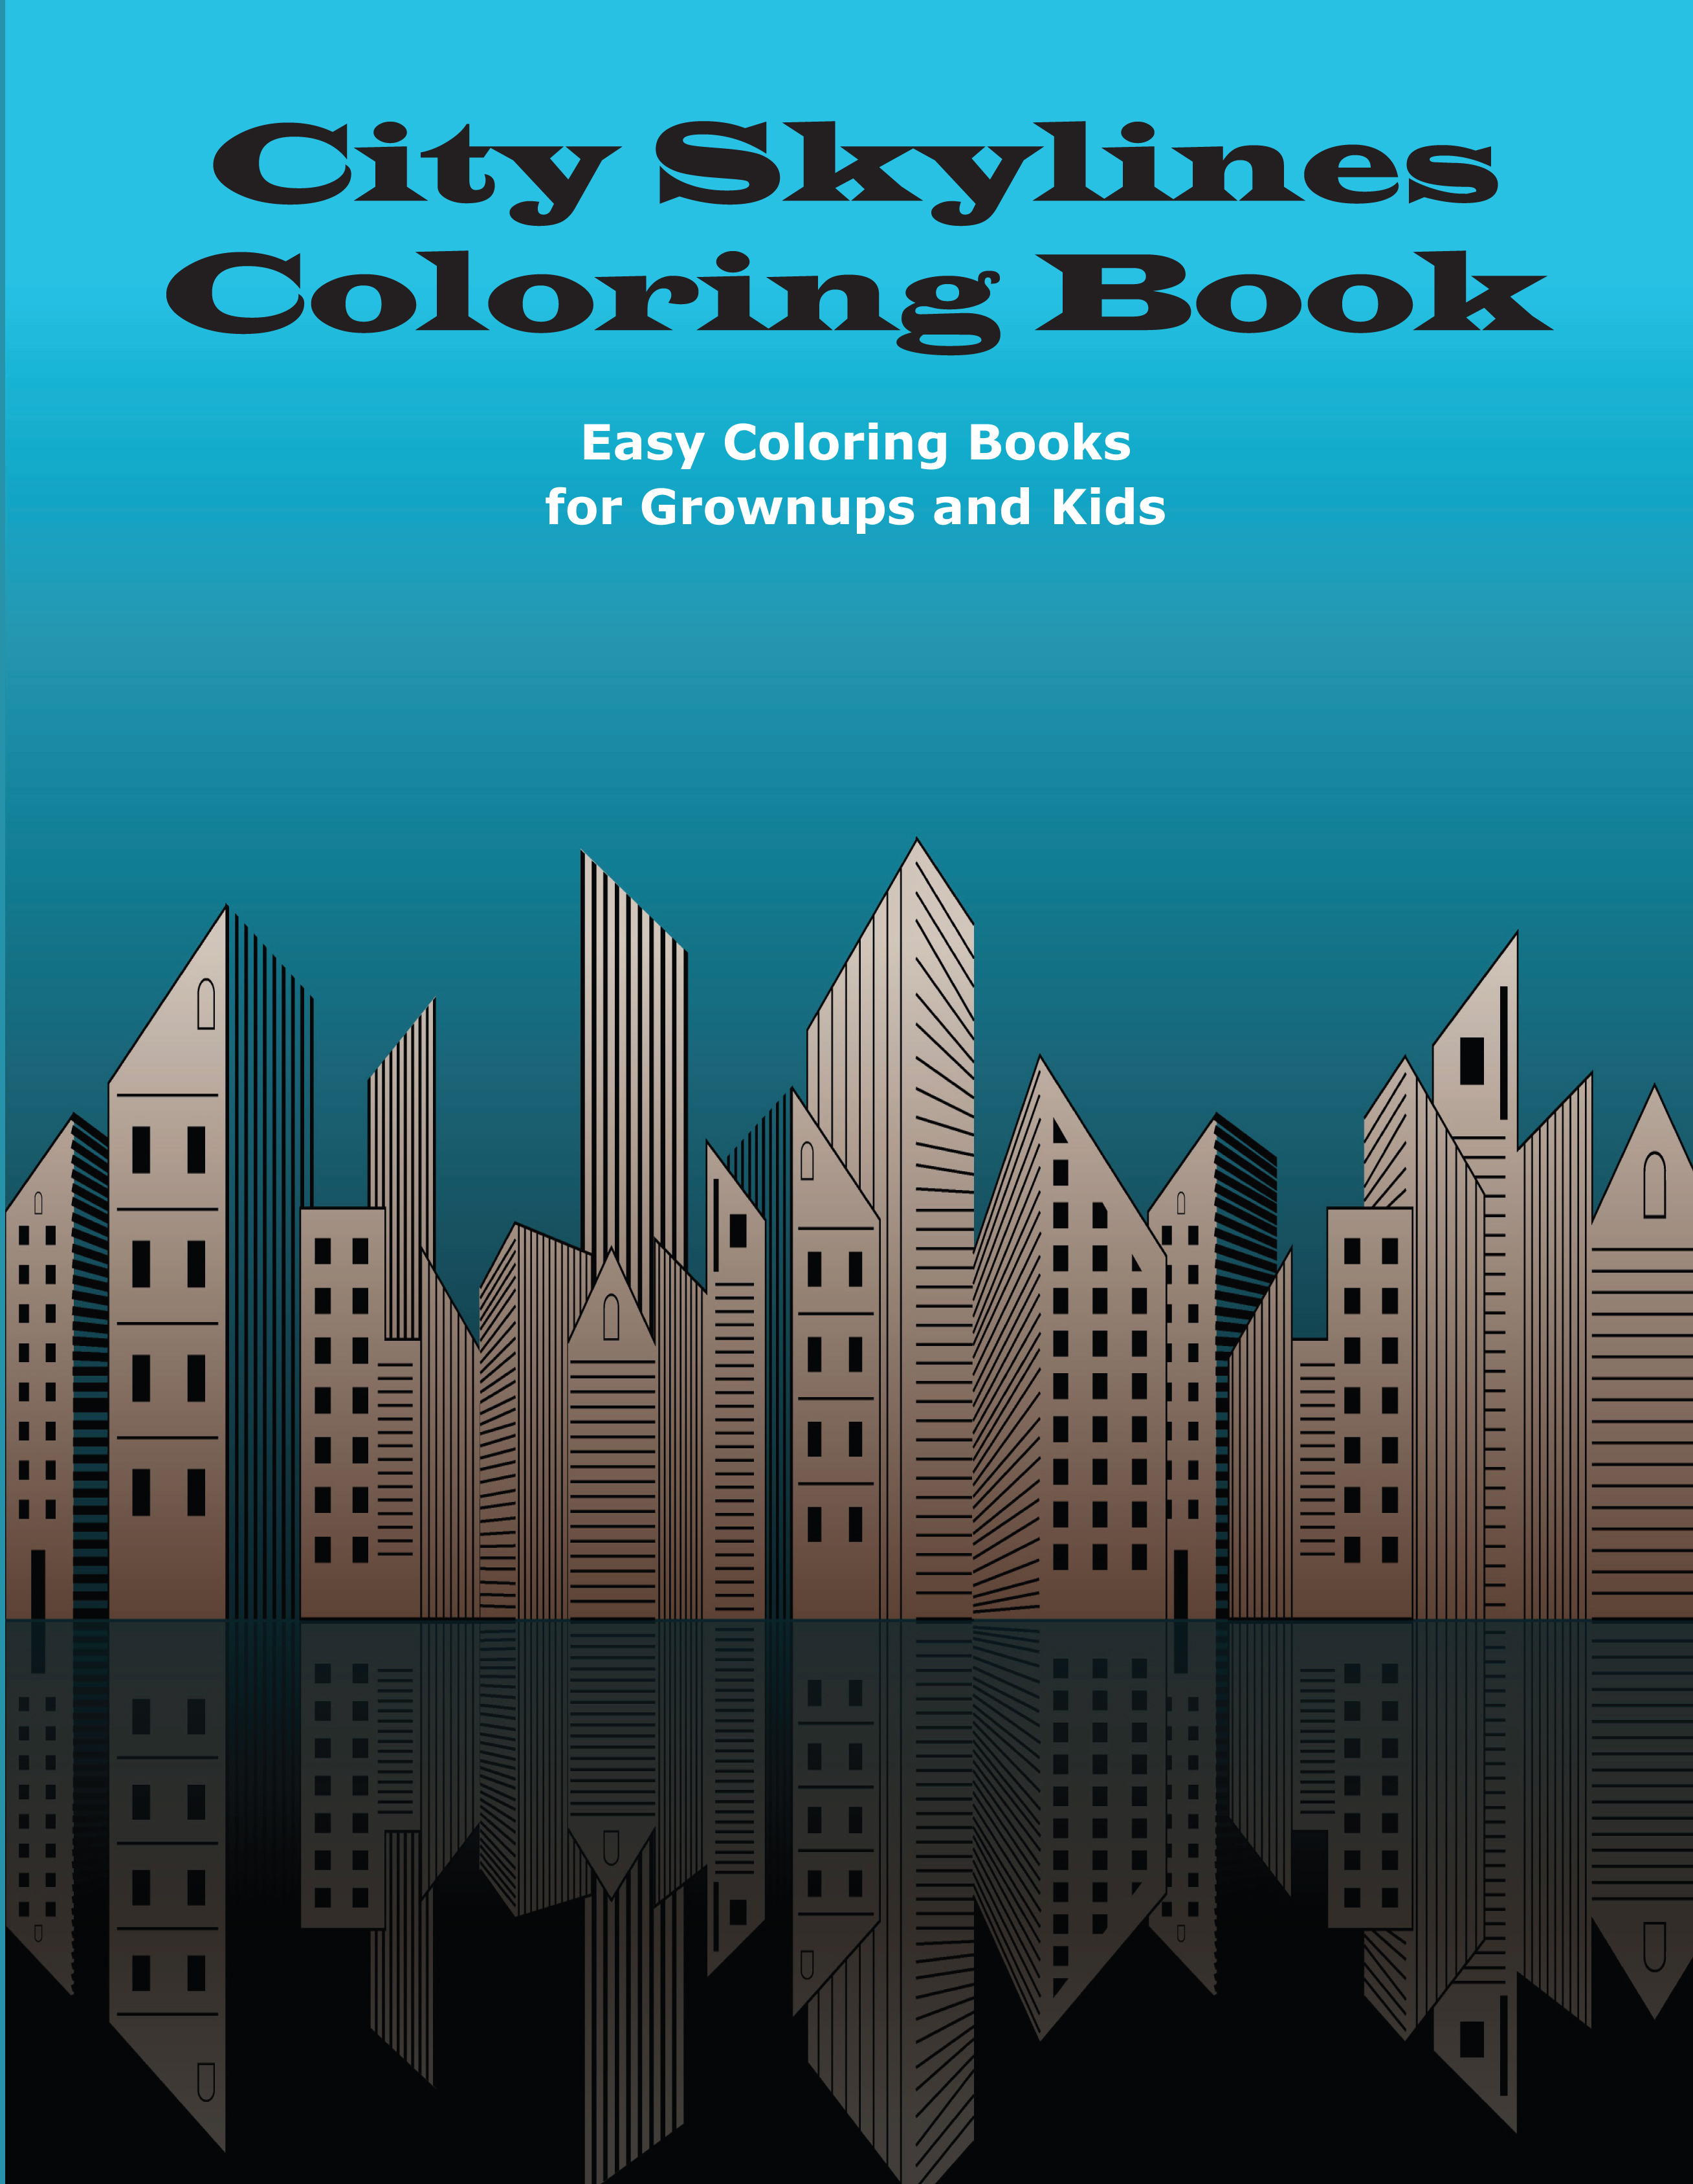 Coloring Books from FTL Publications | FTL Publications blog